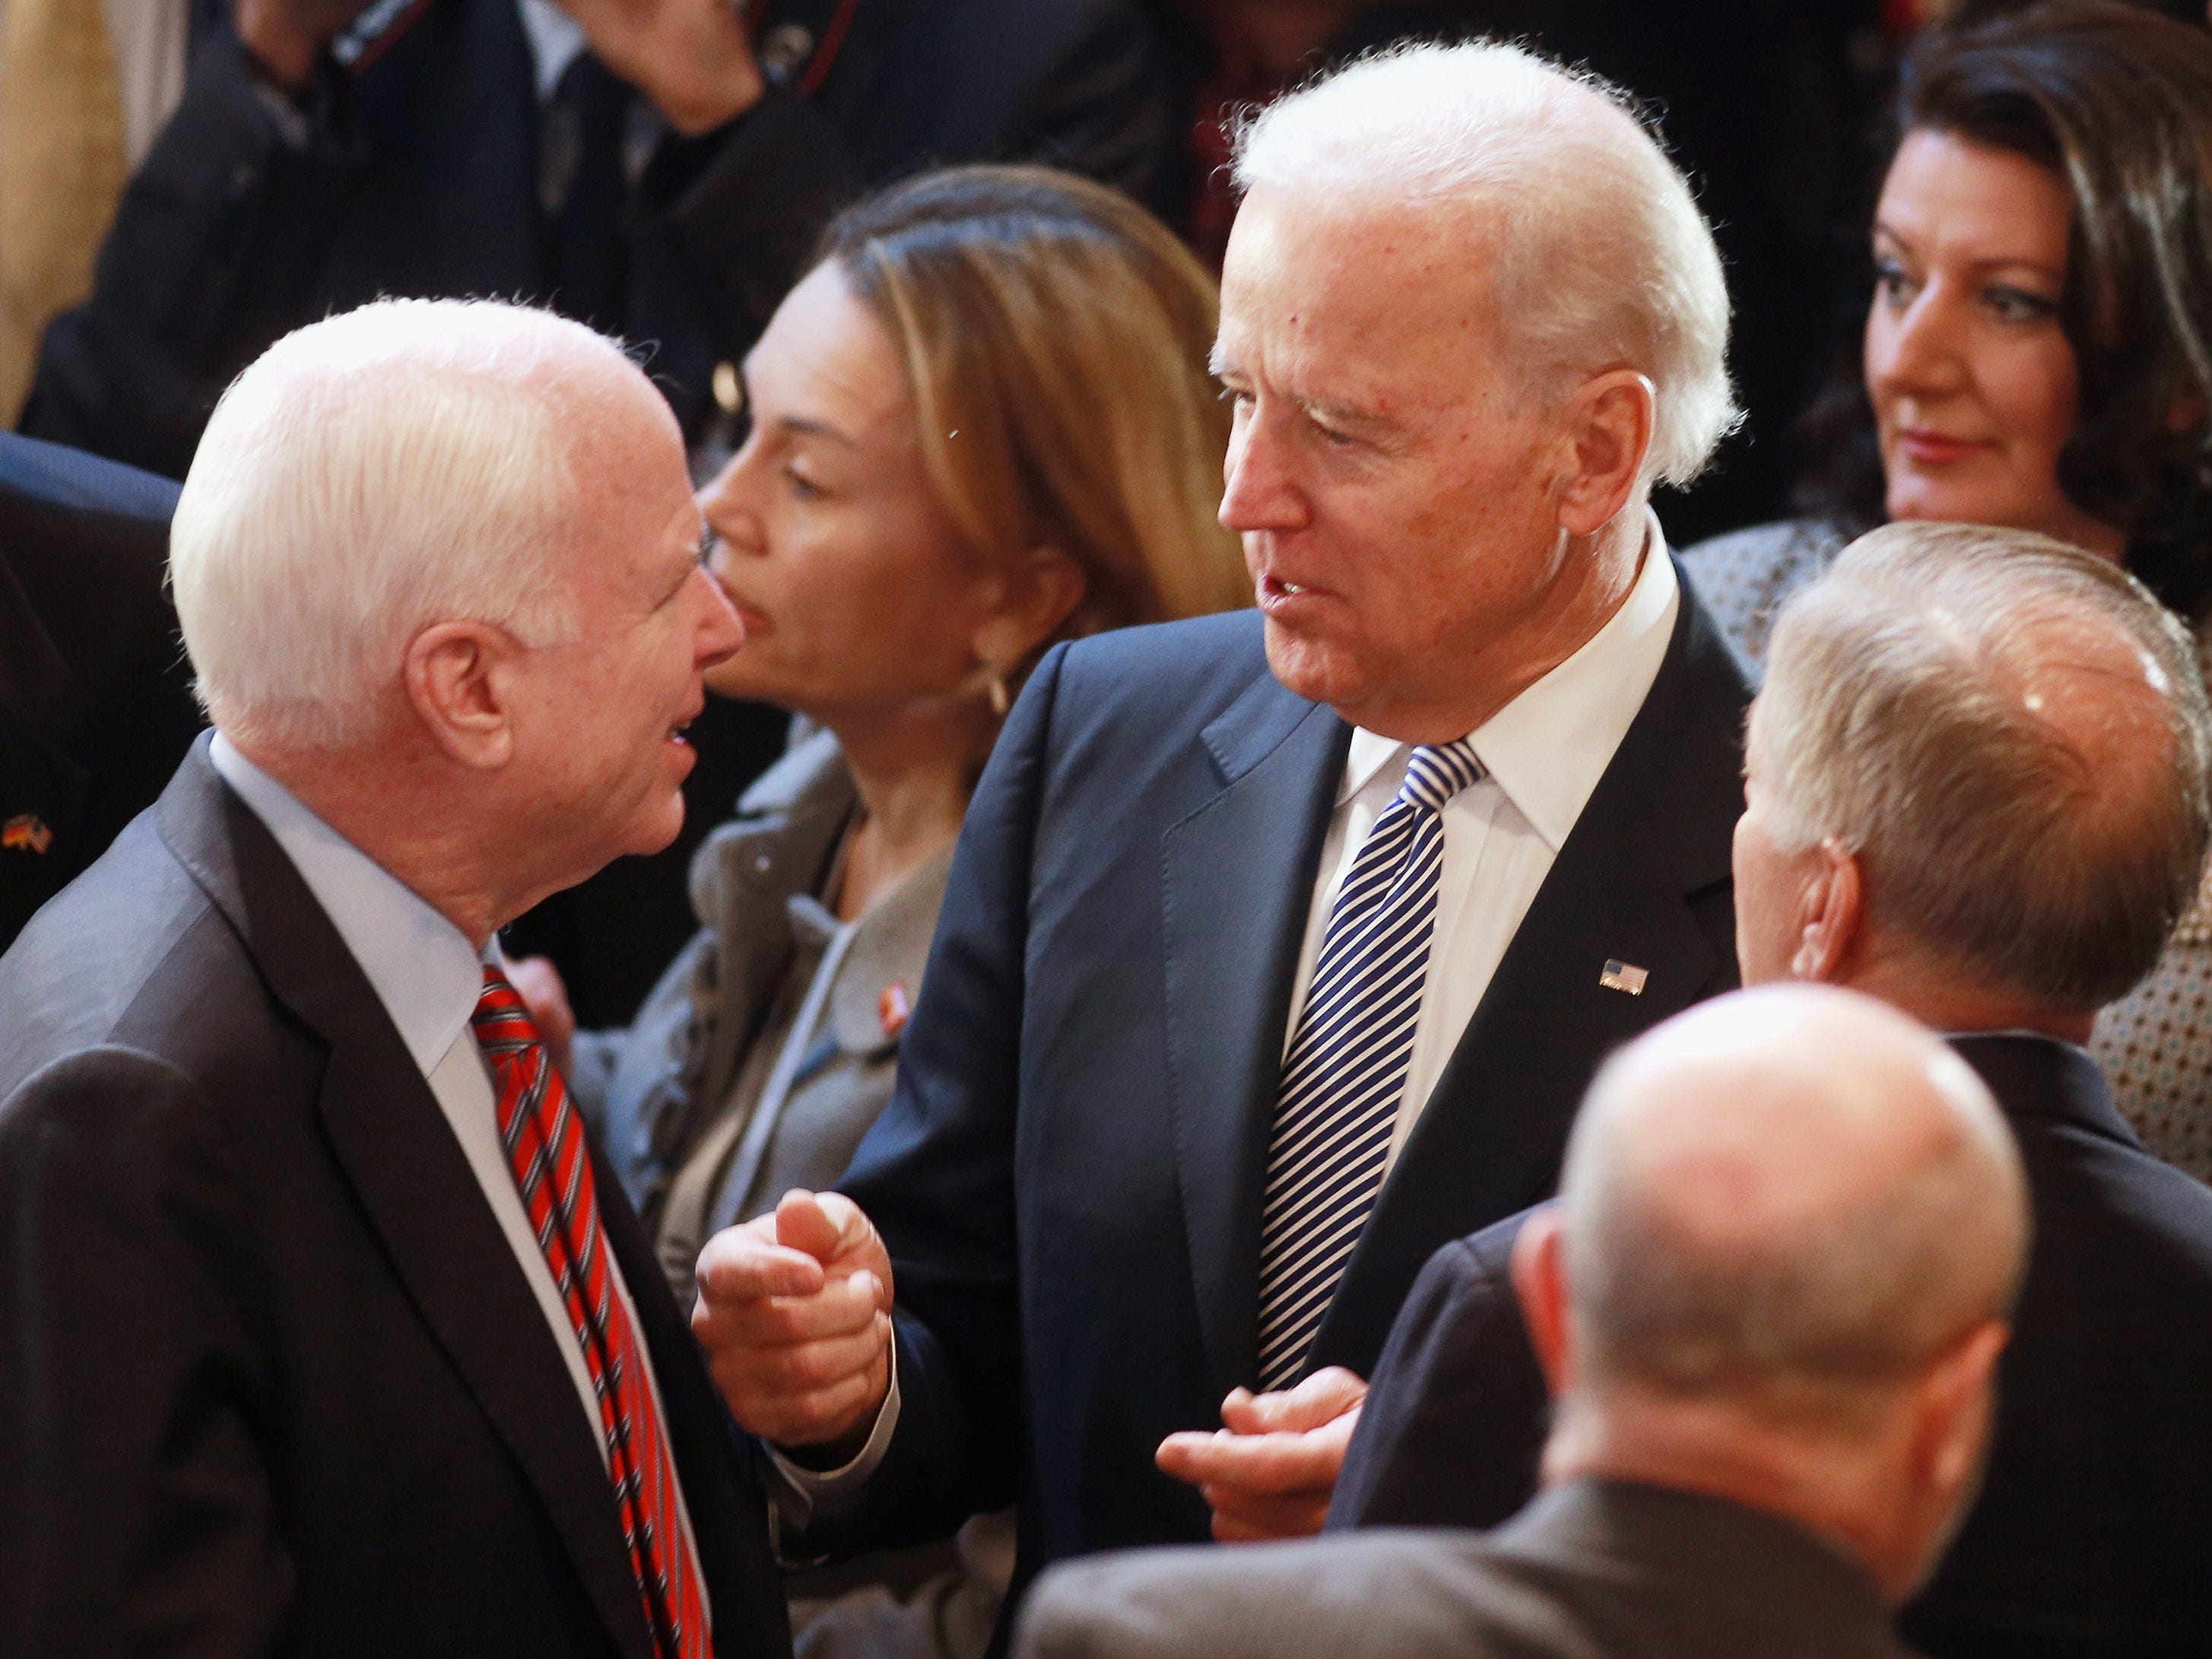 MUNICH, GERMANY - FEBRUARY 02:  U.S. Vice President Joe Biden (C) and U.S. senator John McCain (L) chat together during day 2 of the 49th Munich Security Conference at Hotel Bayerischer Hof on February 2, 2013 in Munich, Germany. The Munich Security Conference brings together senior figures from around the world to engage in an intensive debate on current and future security challenges and remains the most important independent forum for the exchange of views by international security policy decision-makers.  (Photo by Johannes Simon/Getty Images)